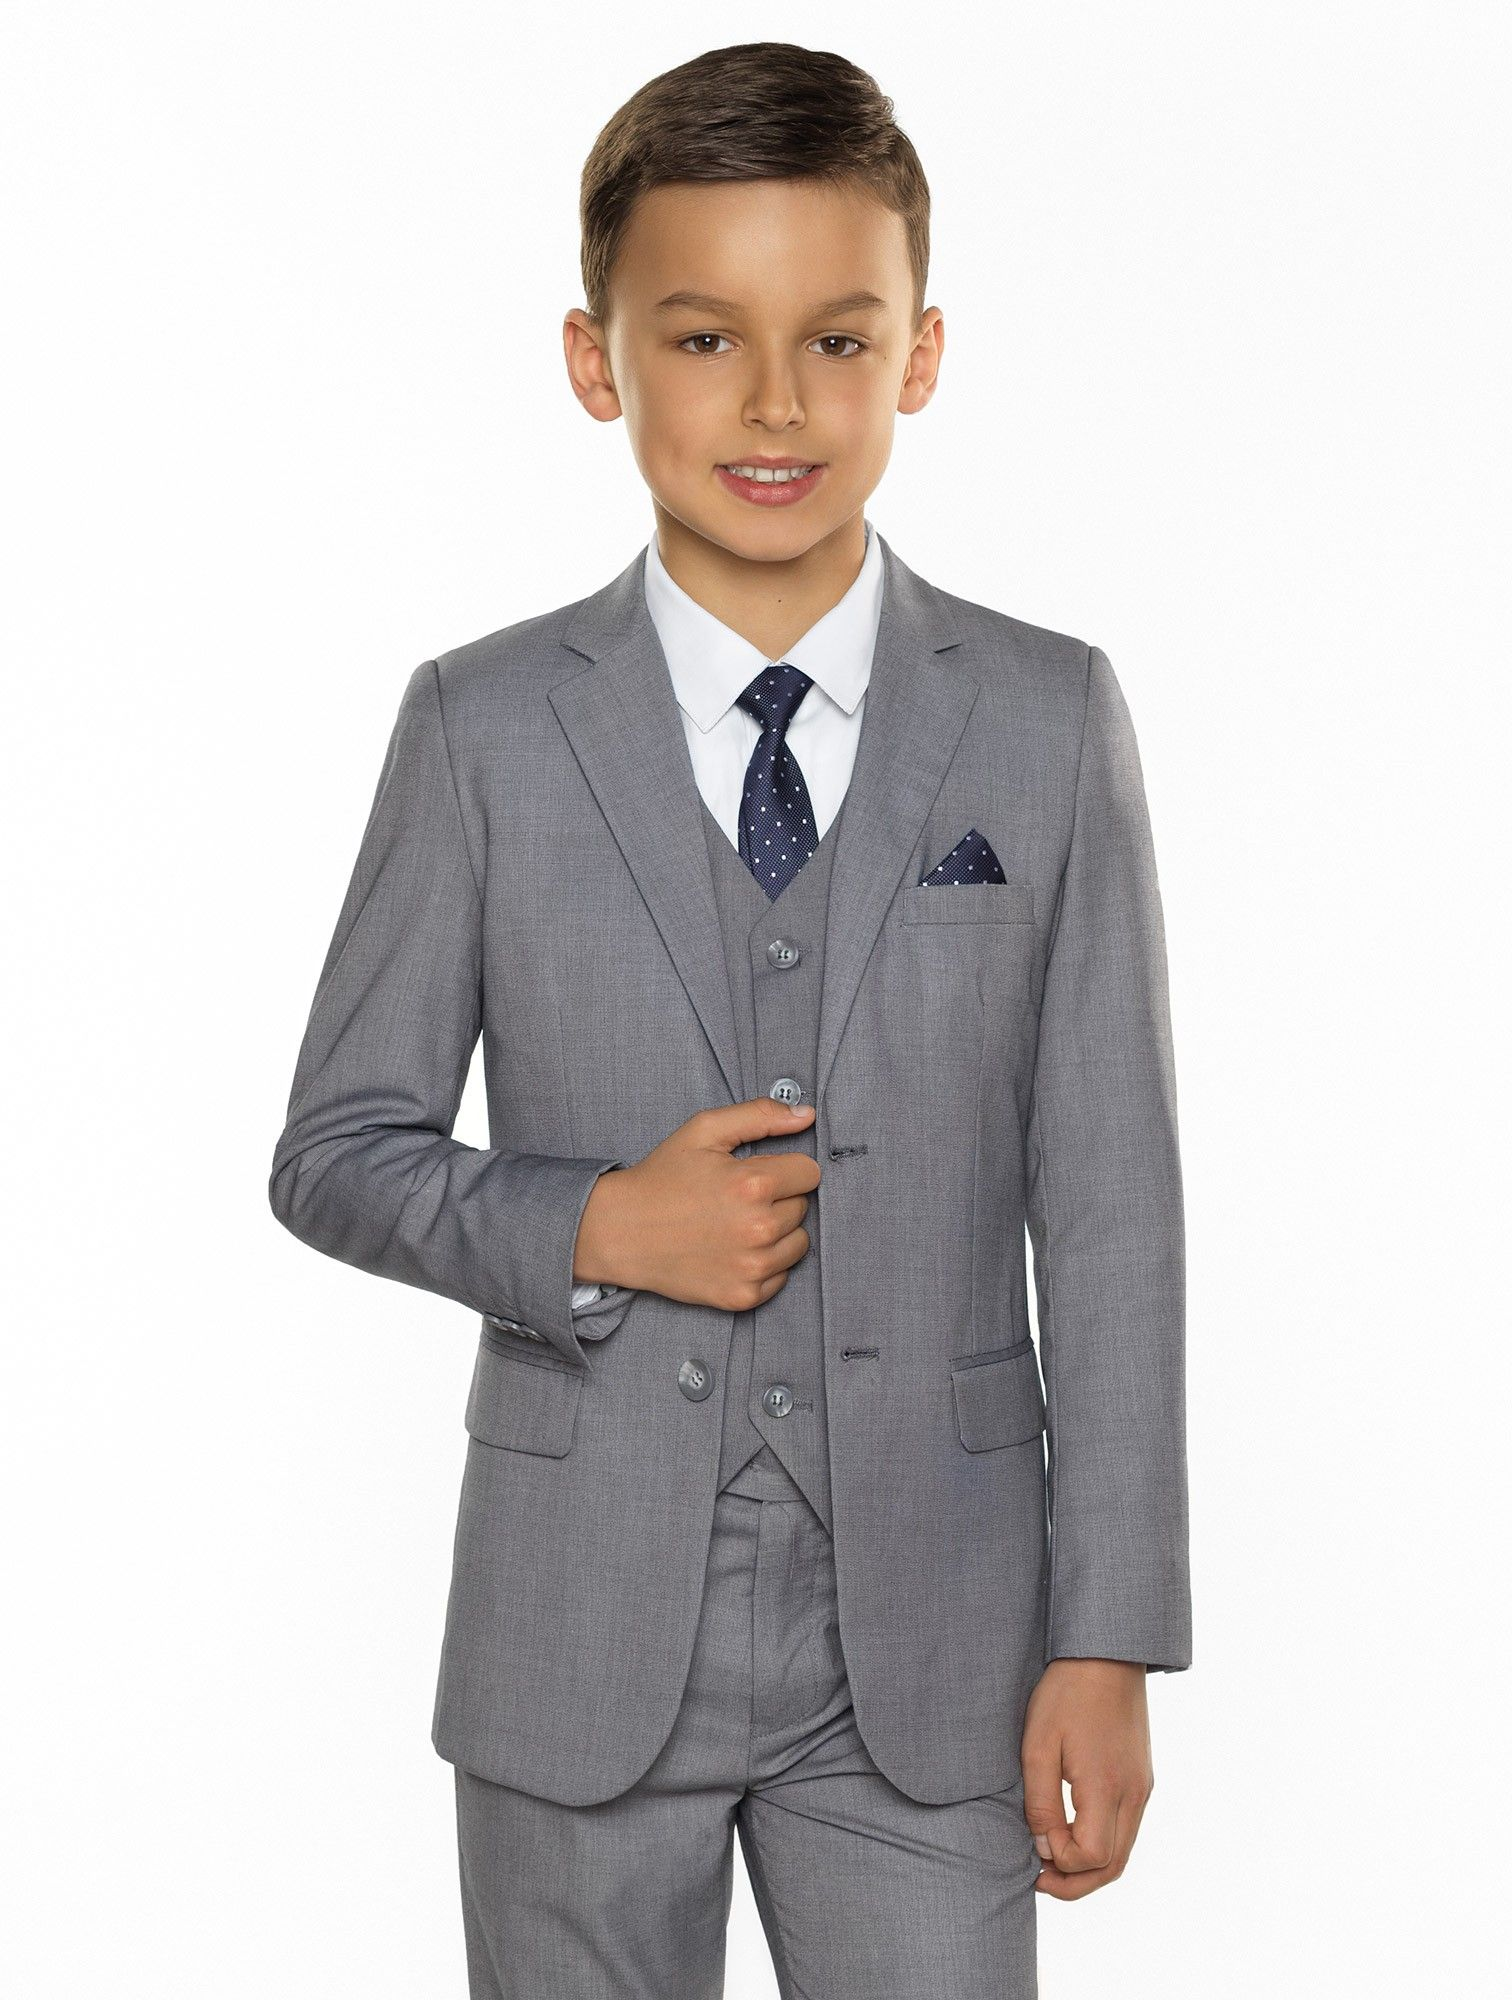 boys grey wedding outfit | "|1512|2000|?|2d52a890155c7e73c479567715fe9850|False|UNLIKELY|0.35939928889274597